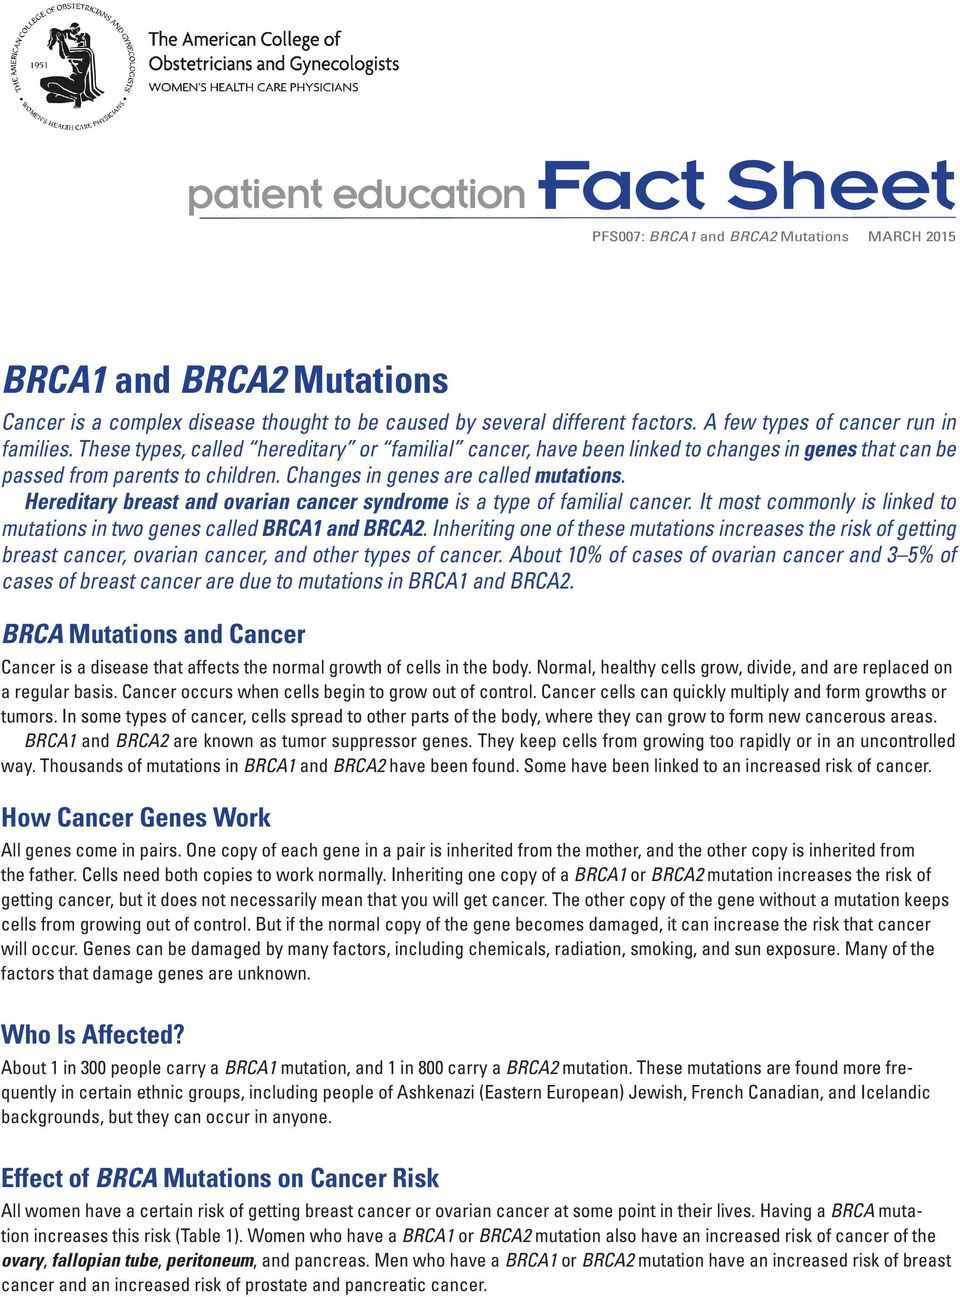 Changes in genes are called mutations. Hereditary breast and ovarian cancer syndrome is a type of familial cancer. It most commonly is linked to mutations in two genes called BRCA1 and BRCA2.